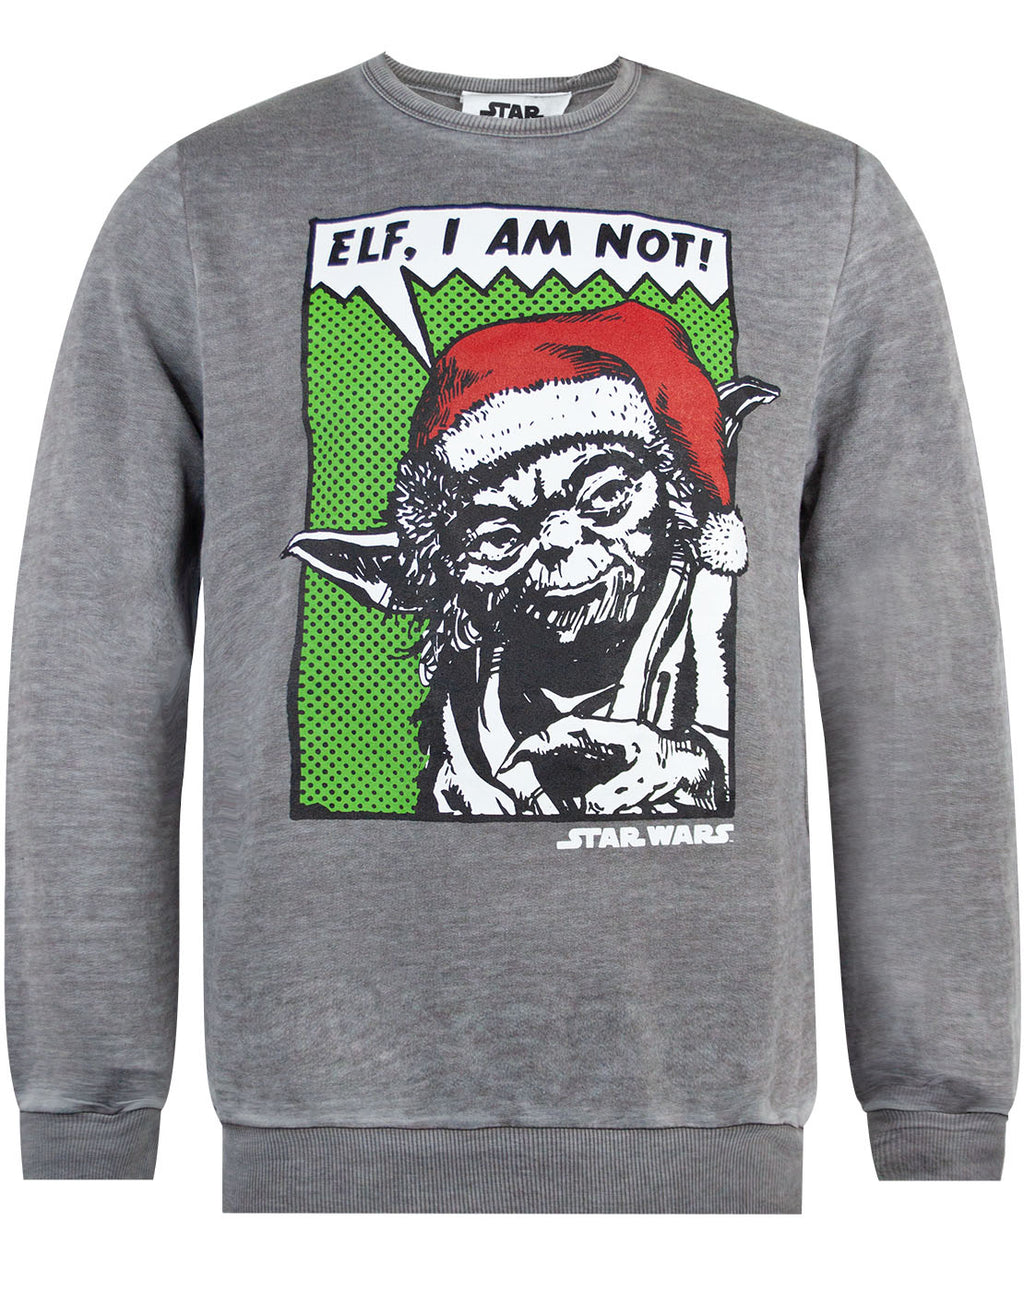 Star Wars Yoda Elf I Am Not Burnout Christmas Sweatshirt